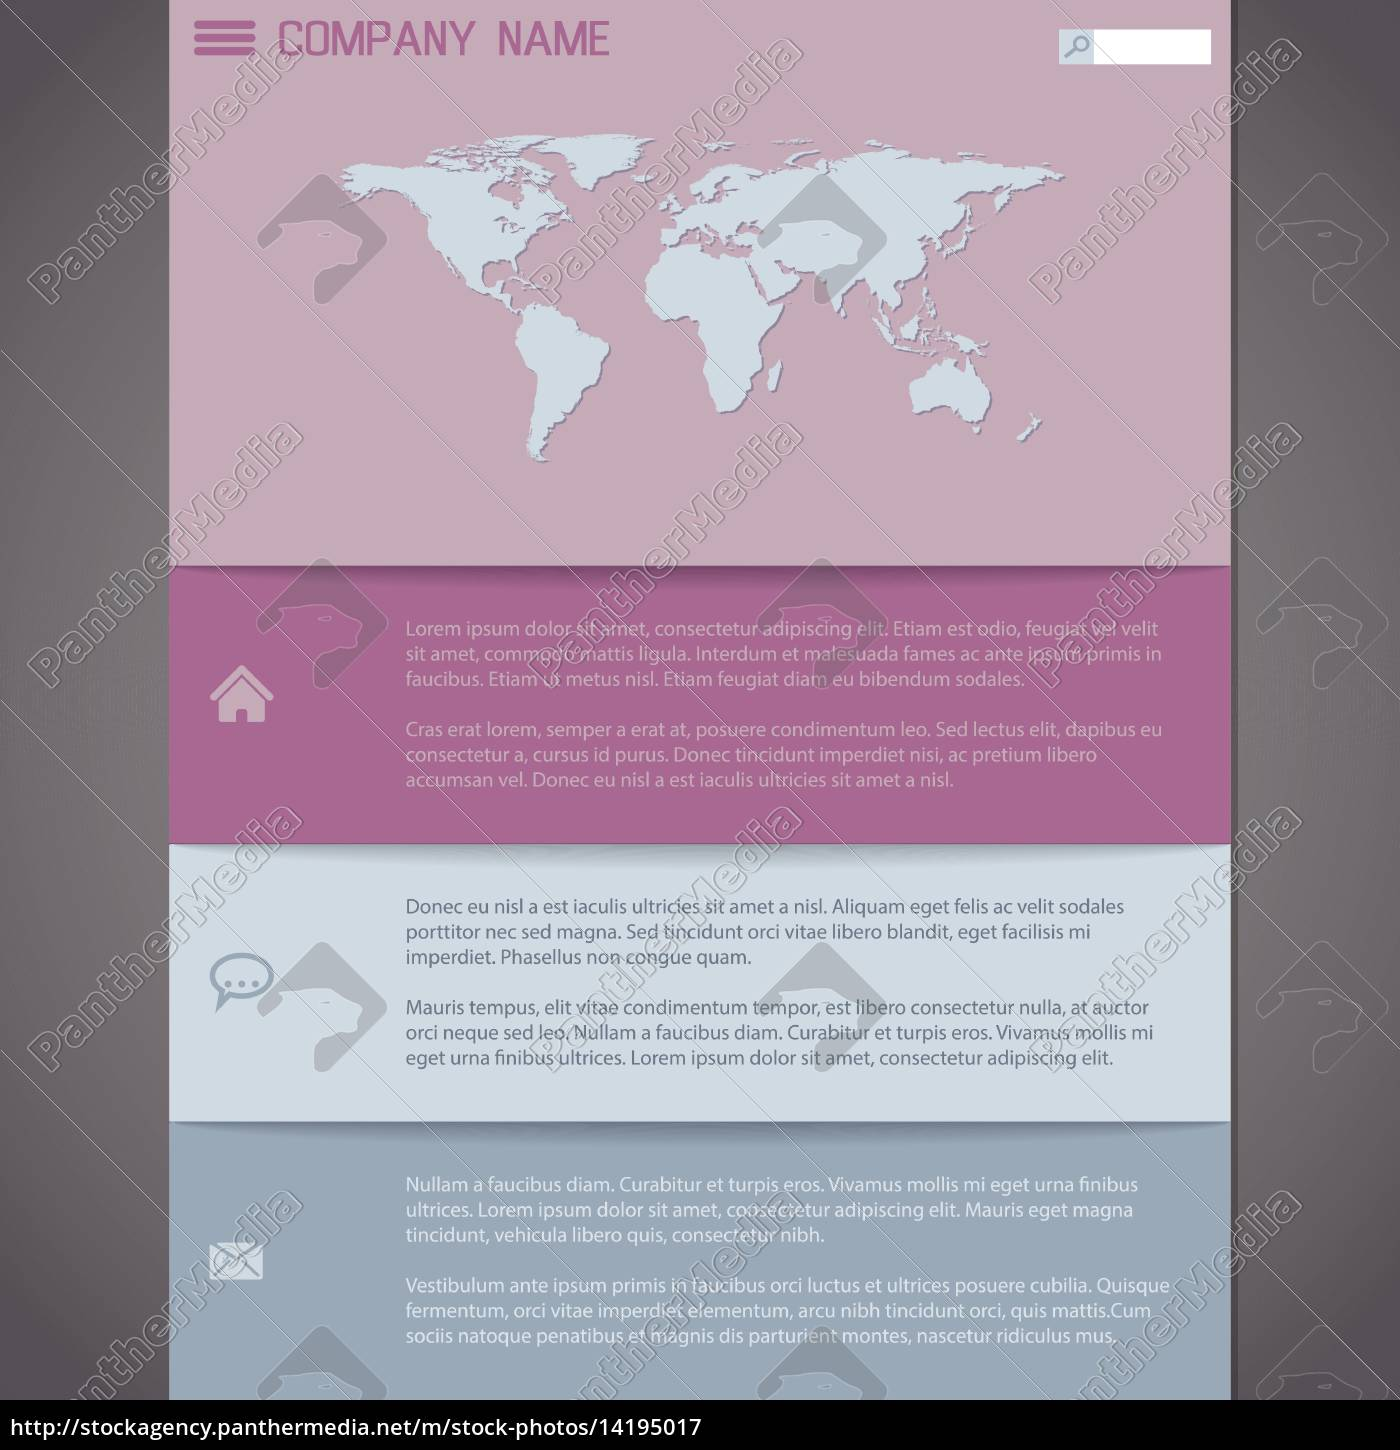 royalty free vector 14195017 - Website template design in pastel colors